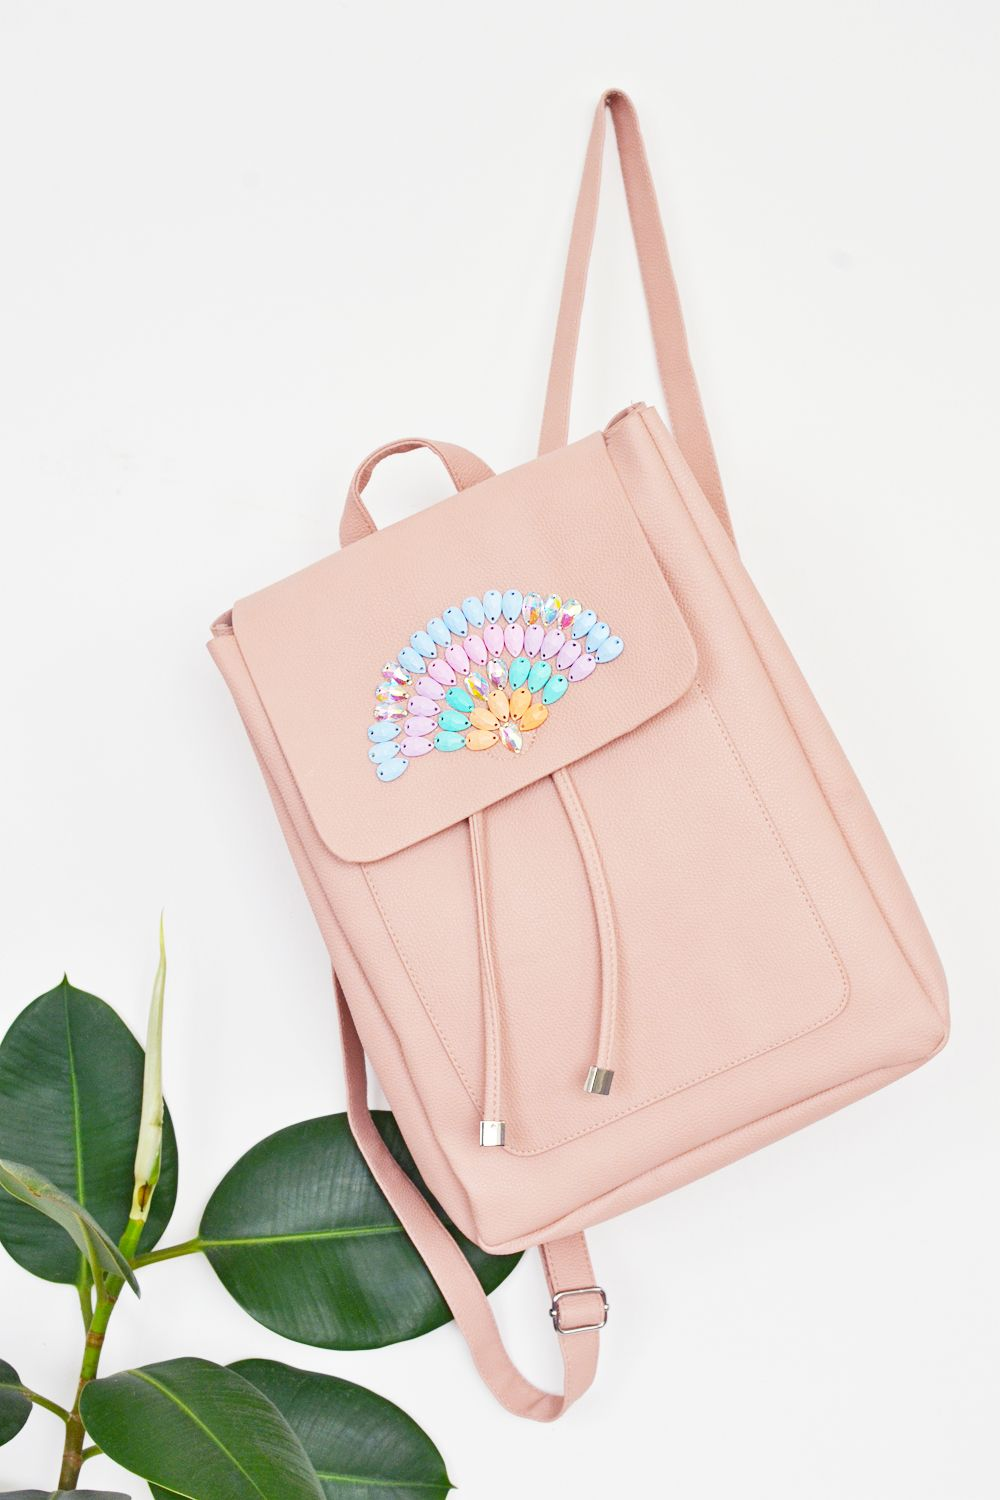 DIY pastel backpack with rainbow crystals